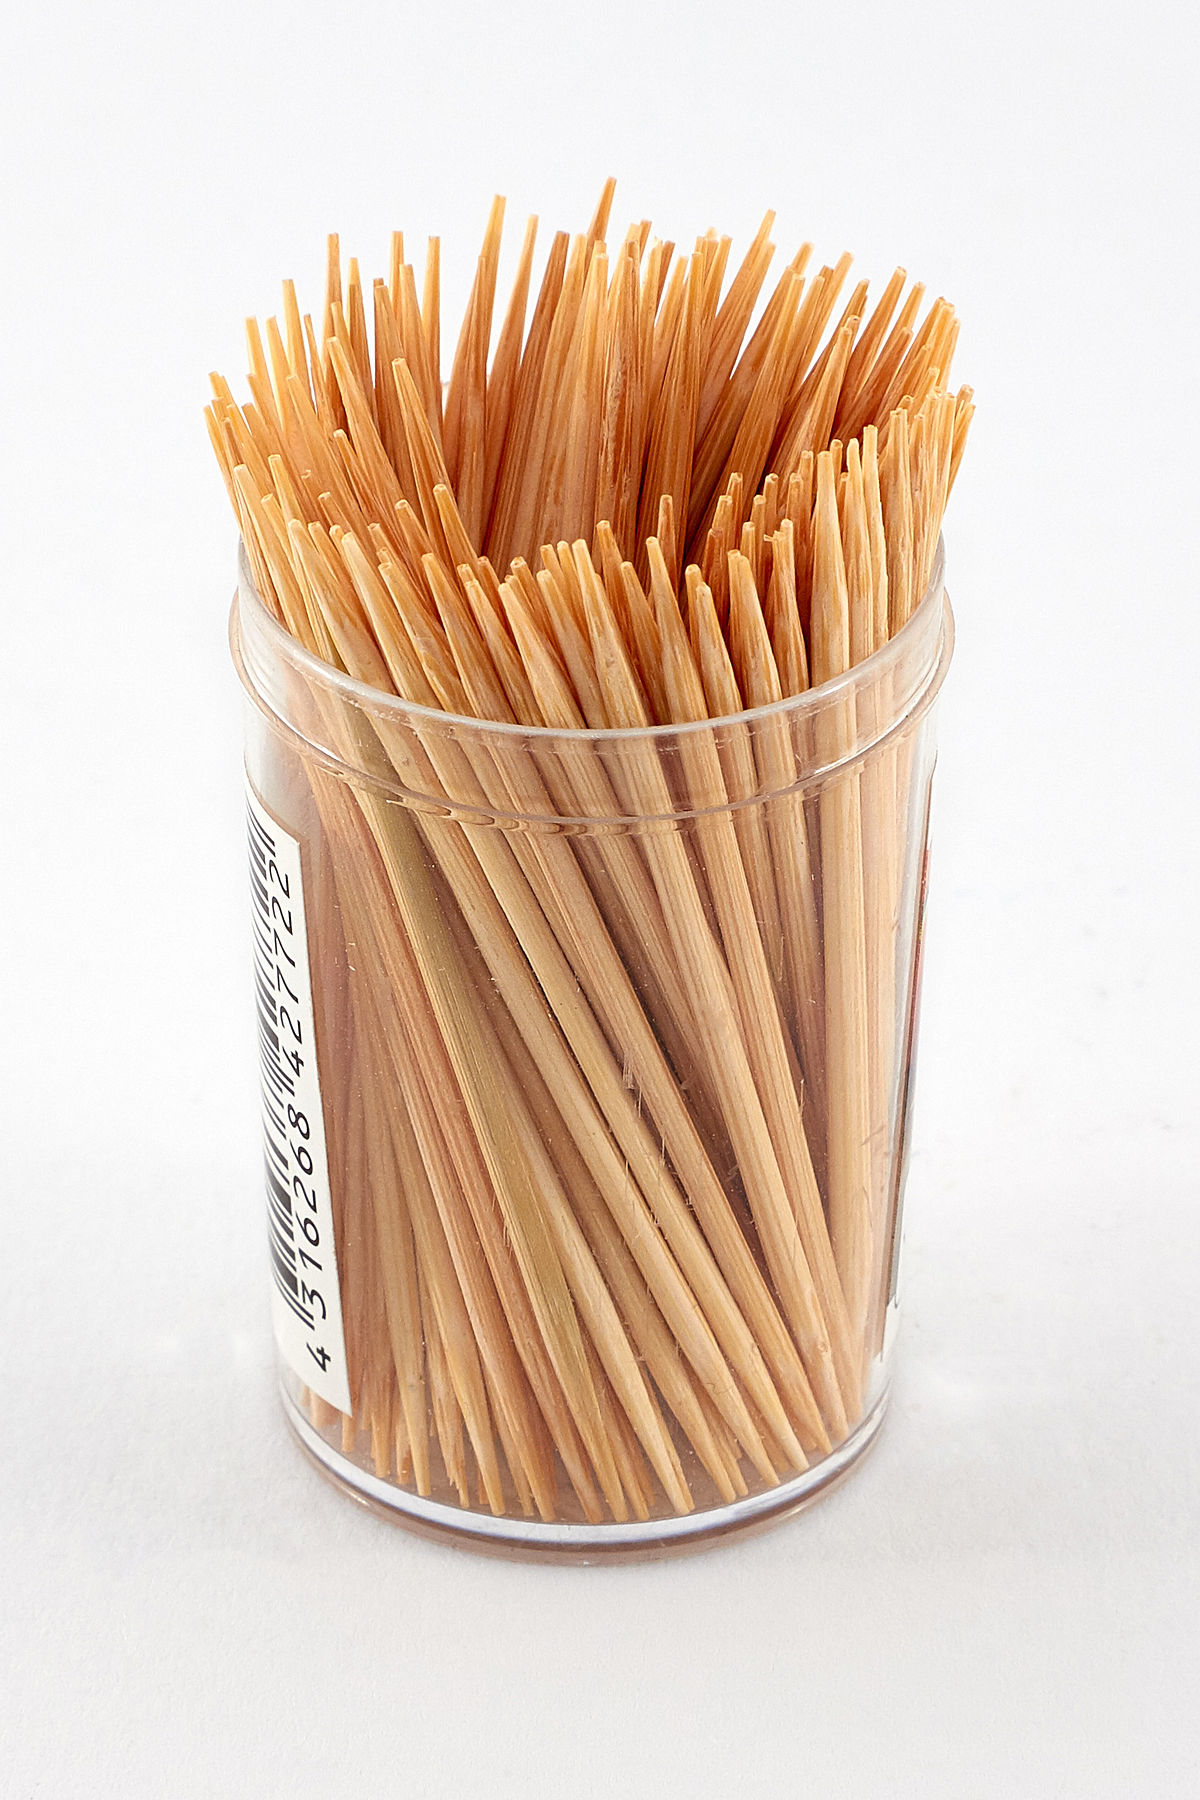 FREE sample of toothpicks and.